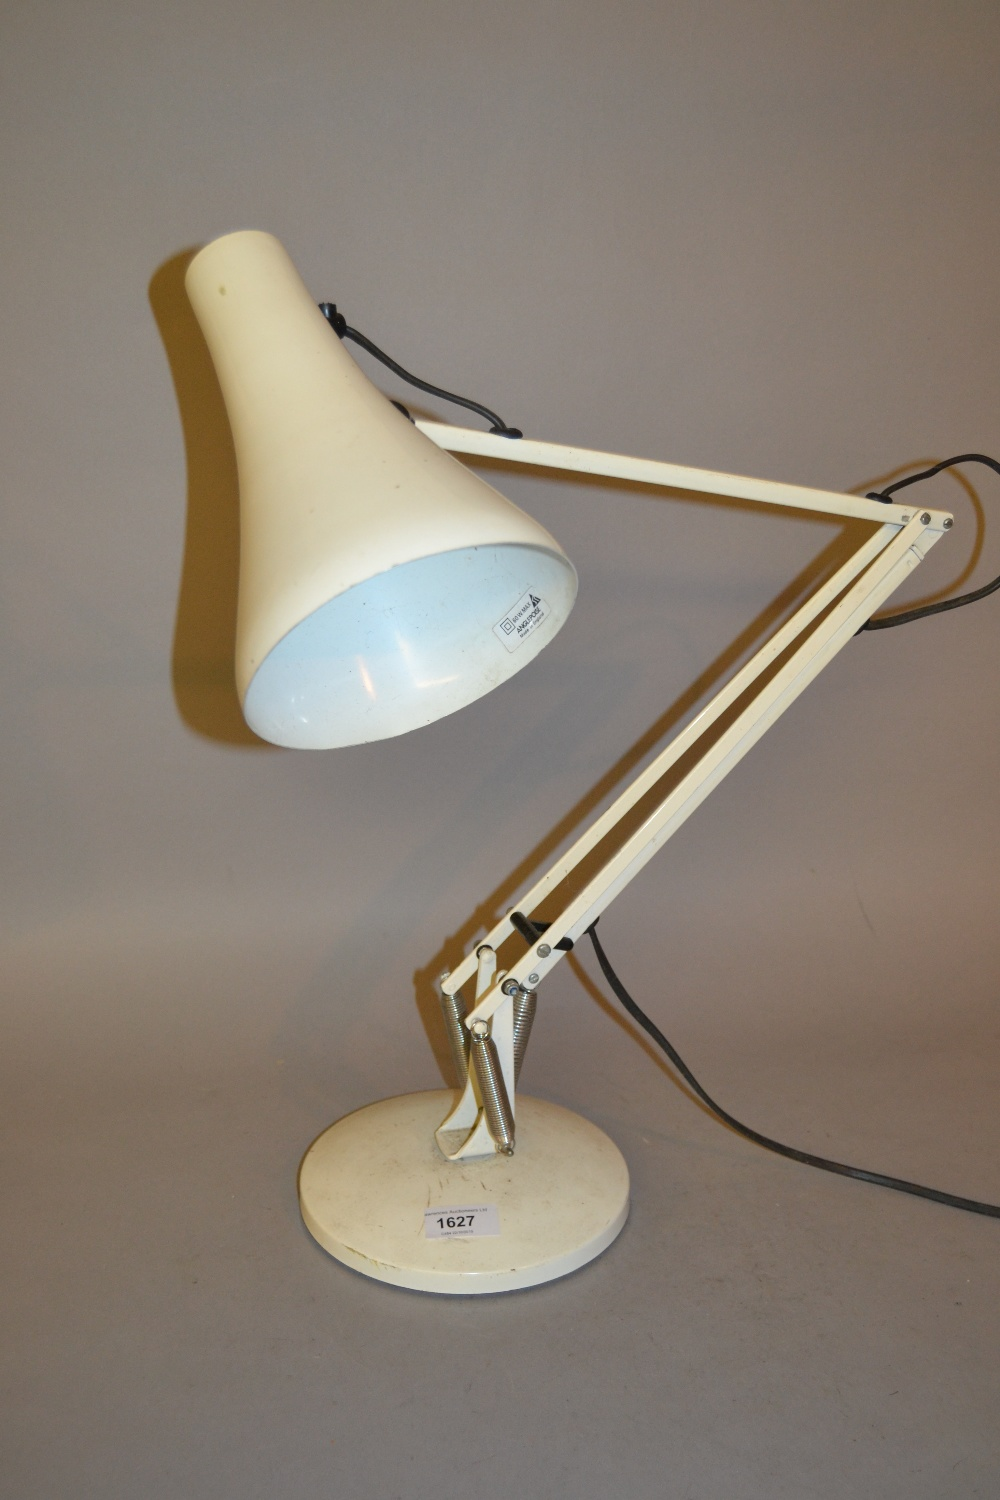 Lot 1627 - 1960's White painted Anglepoise desk lamp